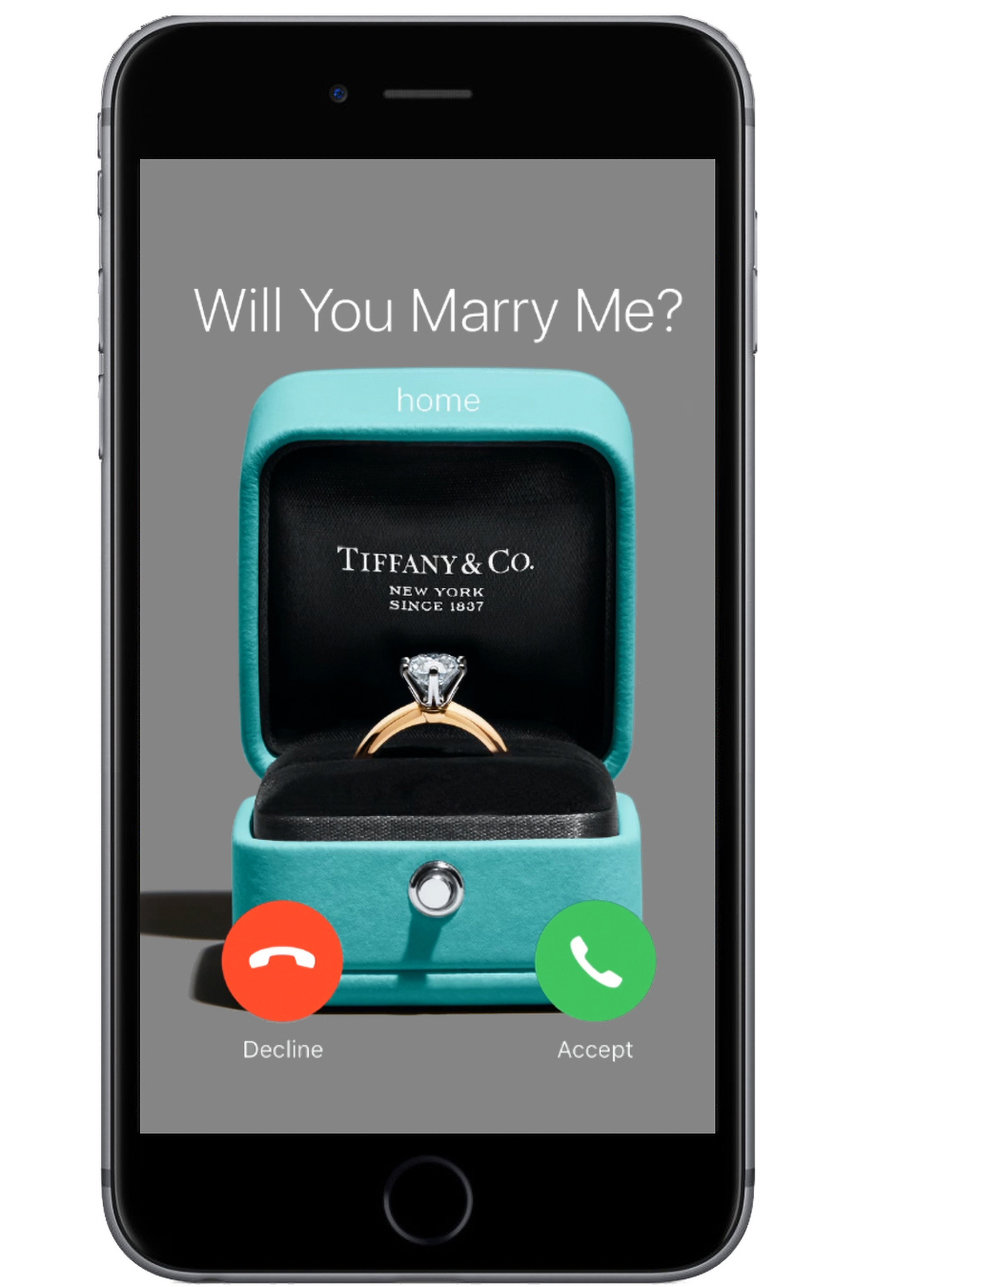 Love, Tiffany - Tiffany loves love, in all its forms. The brand honors the enduring bond between a couple with iconic engagement rings and commitment bands.We build the dream and desire with always-on social campaigns that range from poignant to whimsical. Here's a few on the lighthearted side.